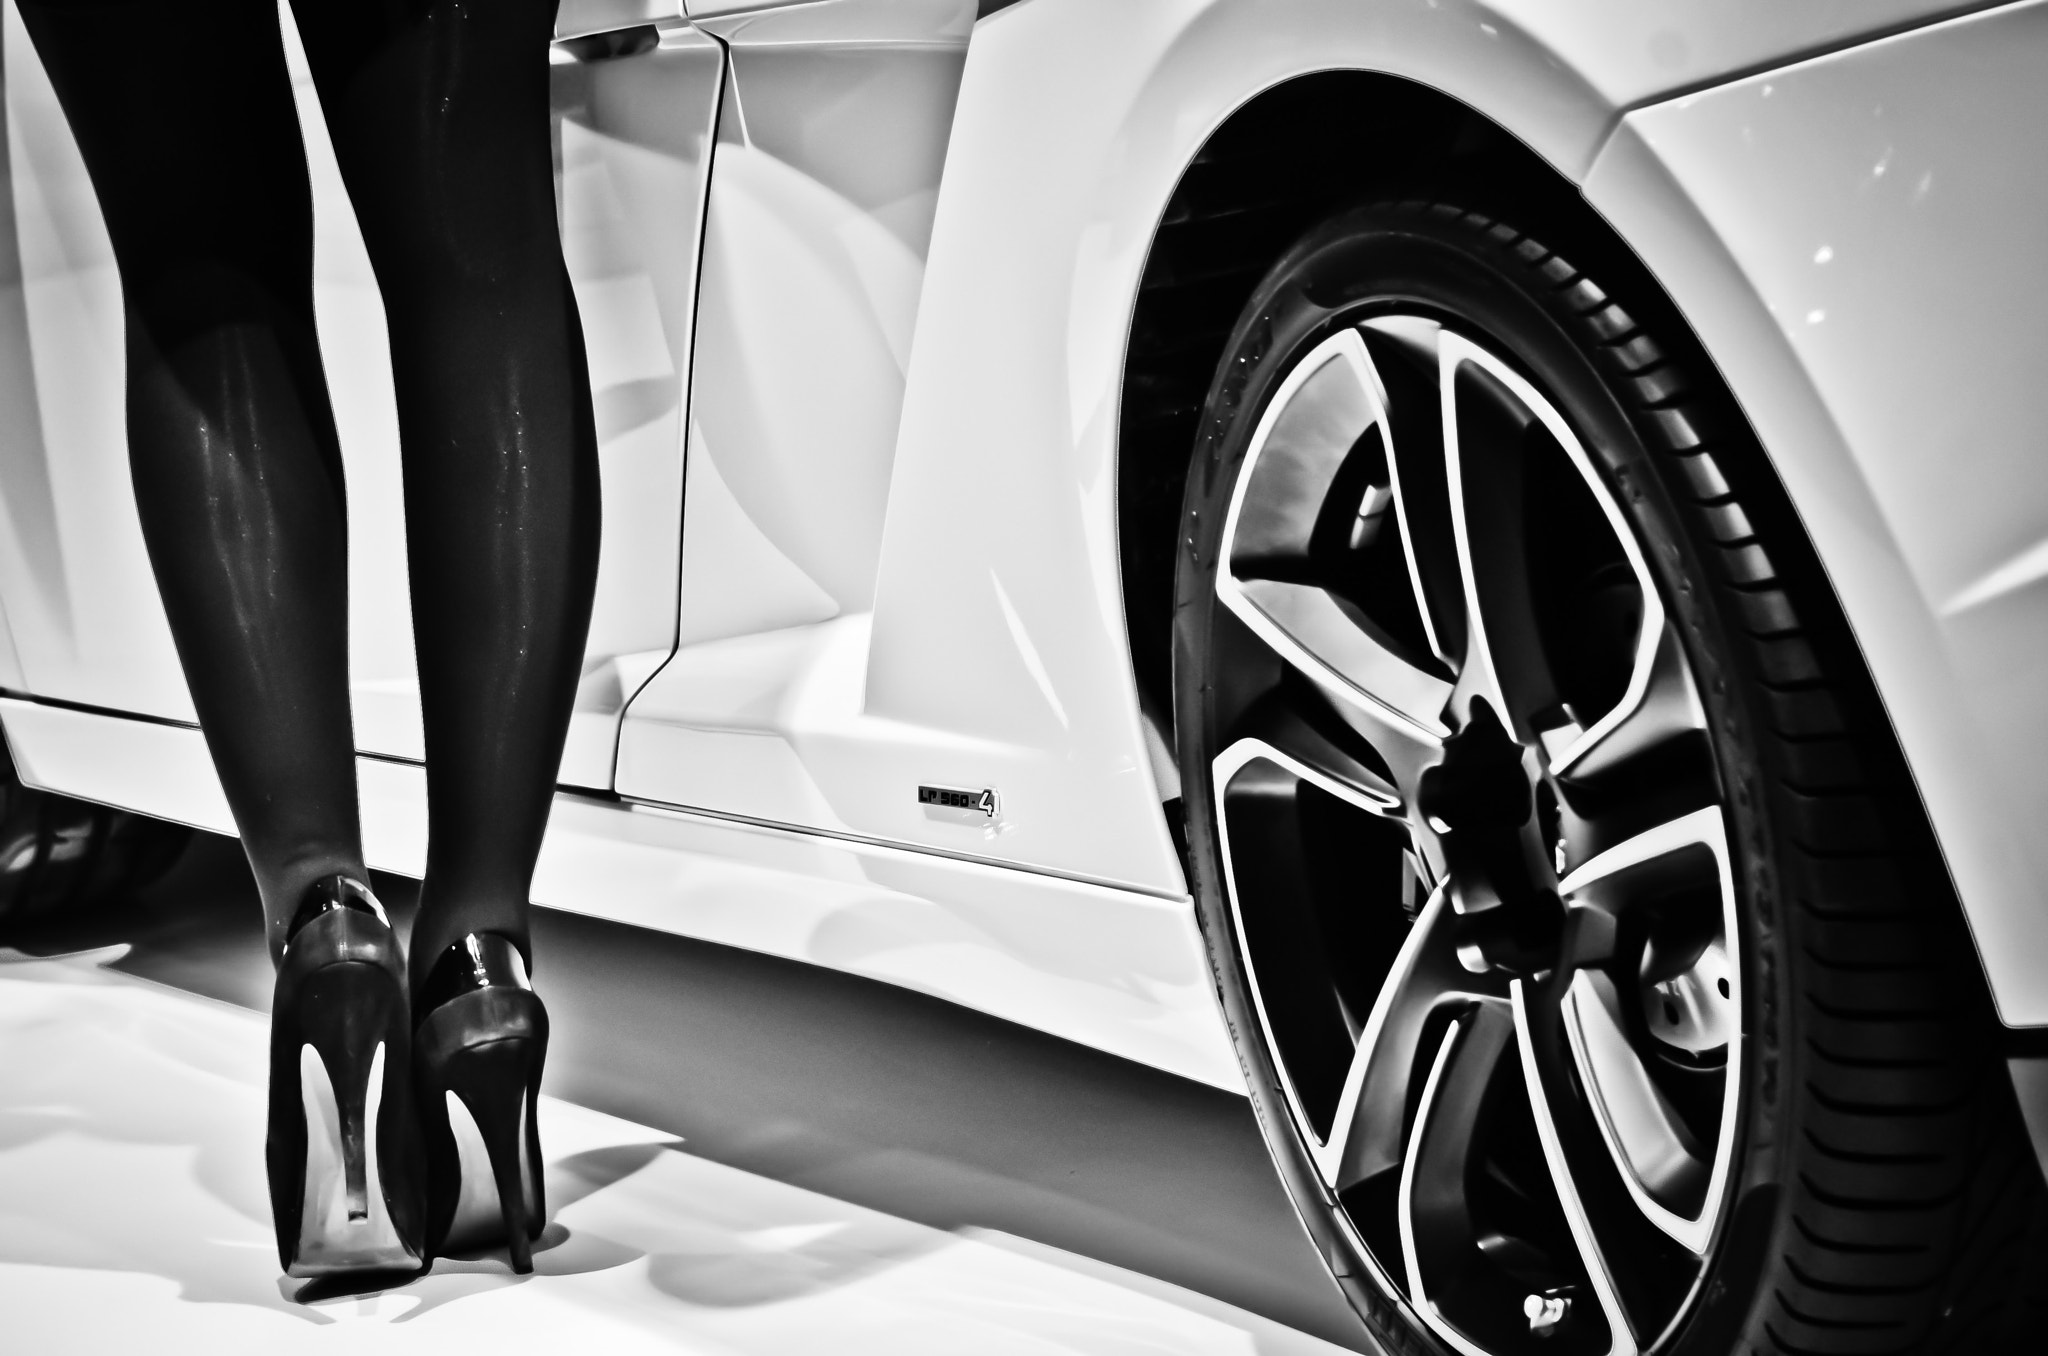 Photograph Heels & Wheels by Khaled  Halwani on 500px